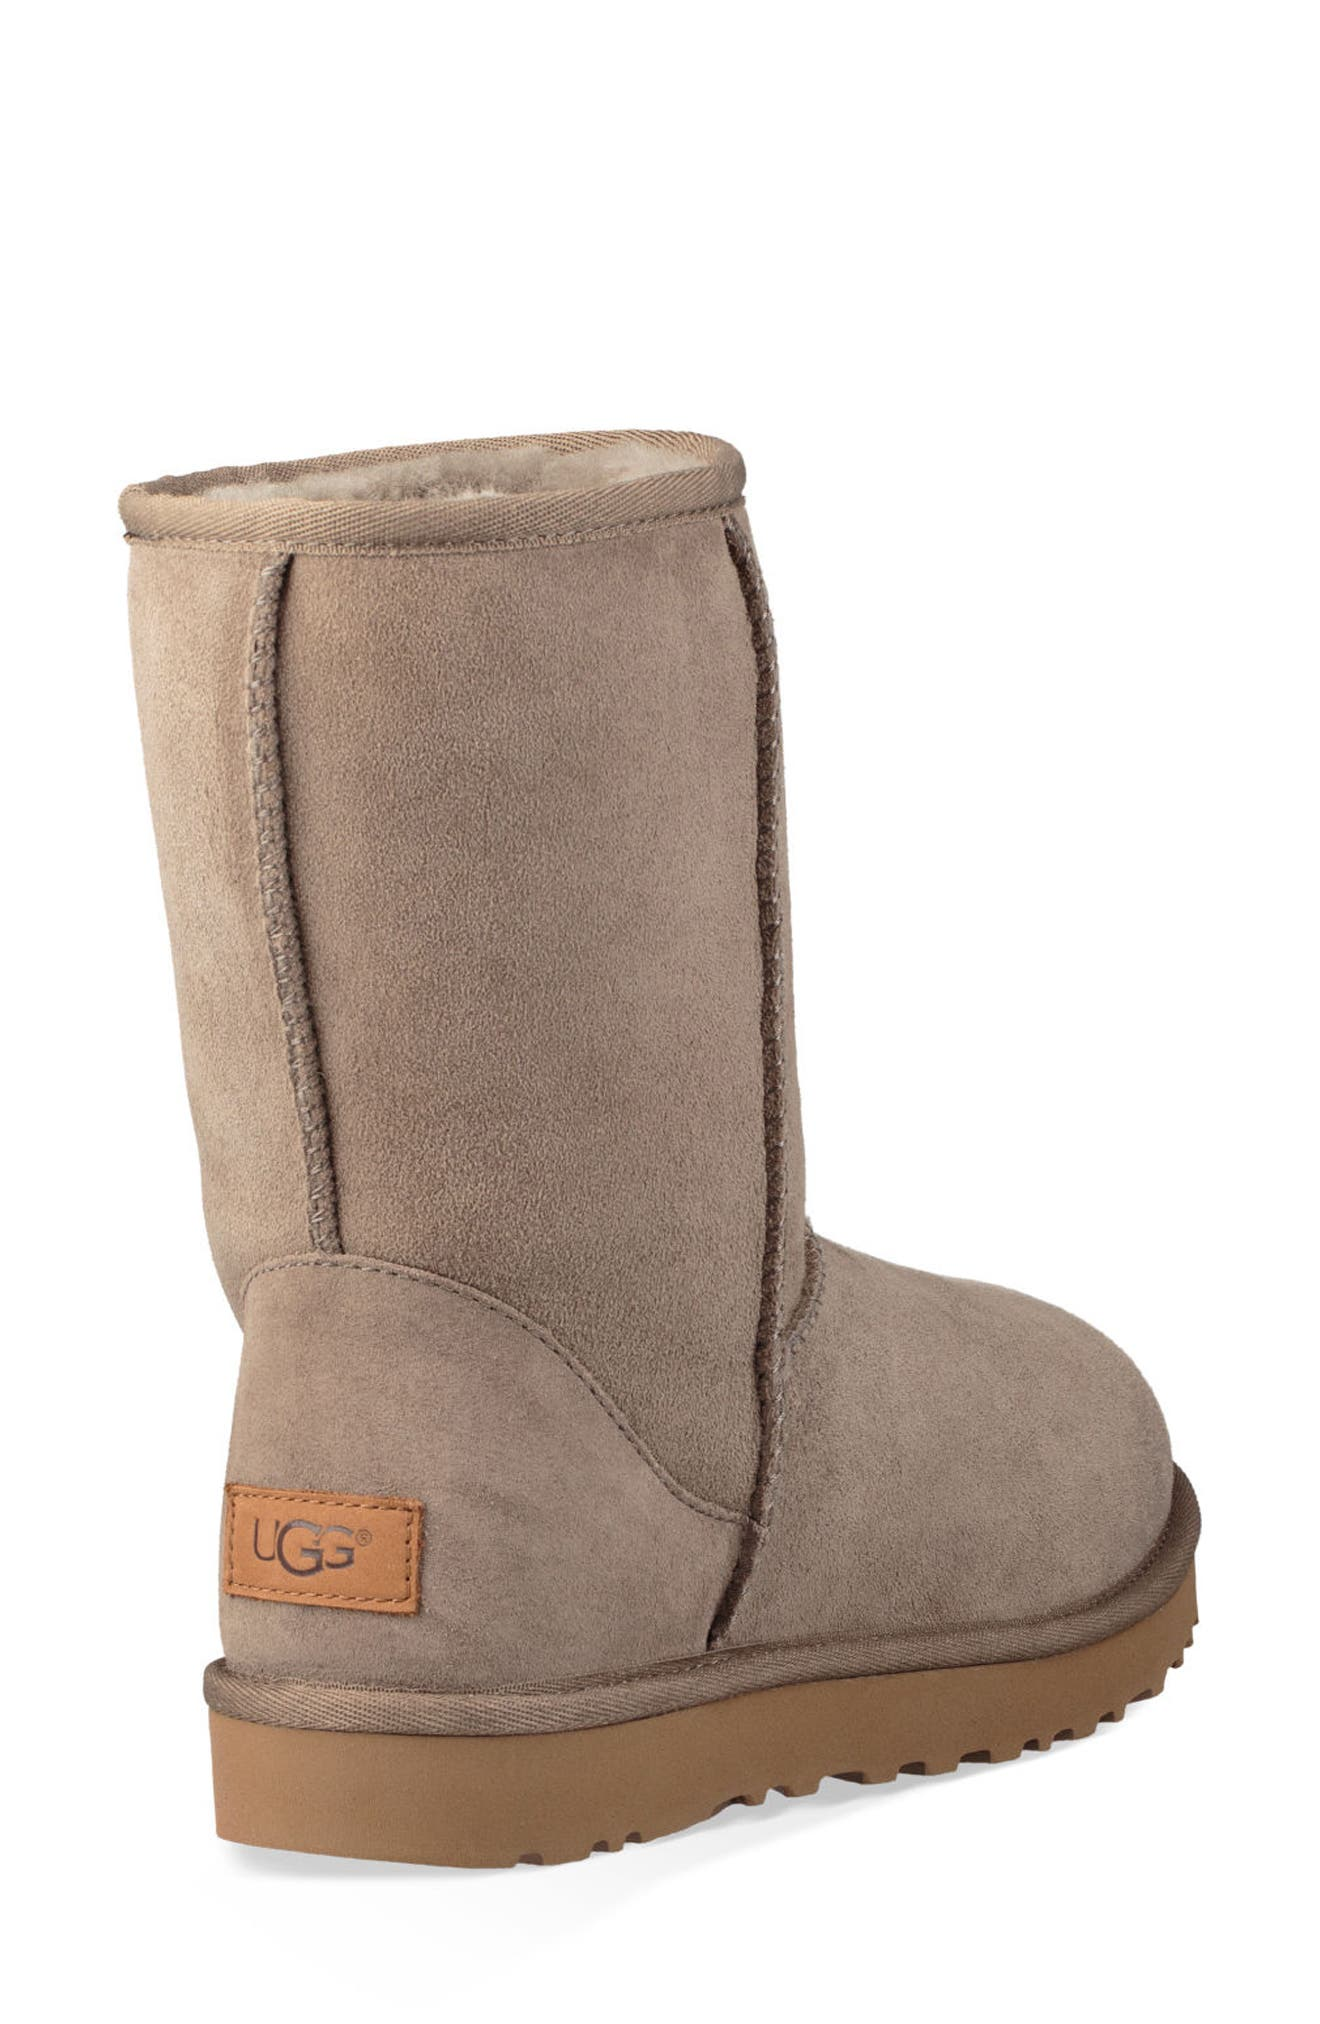 'Classic II' Genuine Shearling Lined Short Boot,                             Alternate thumbnail 3, color,                             BRINDLE SUEDE